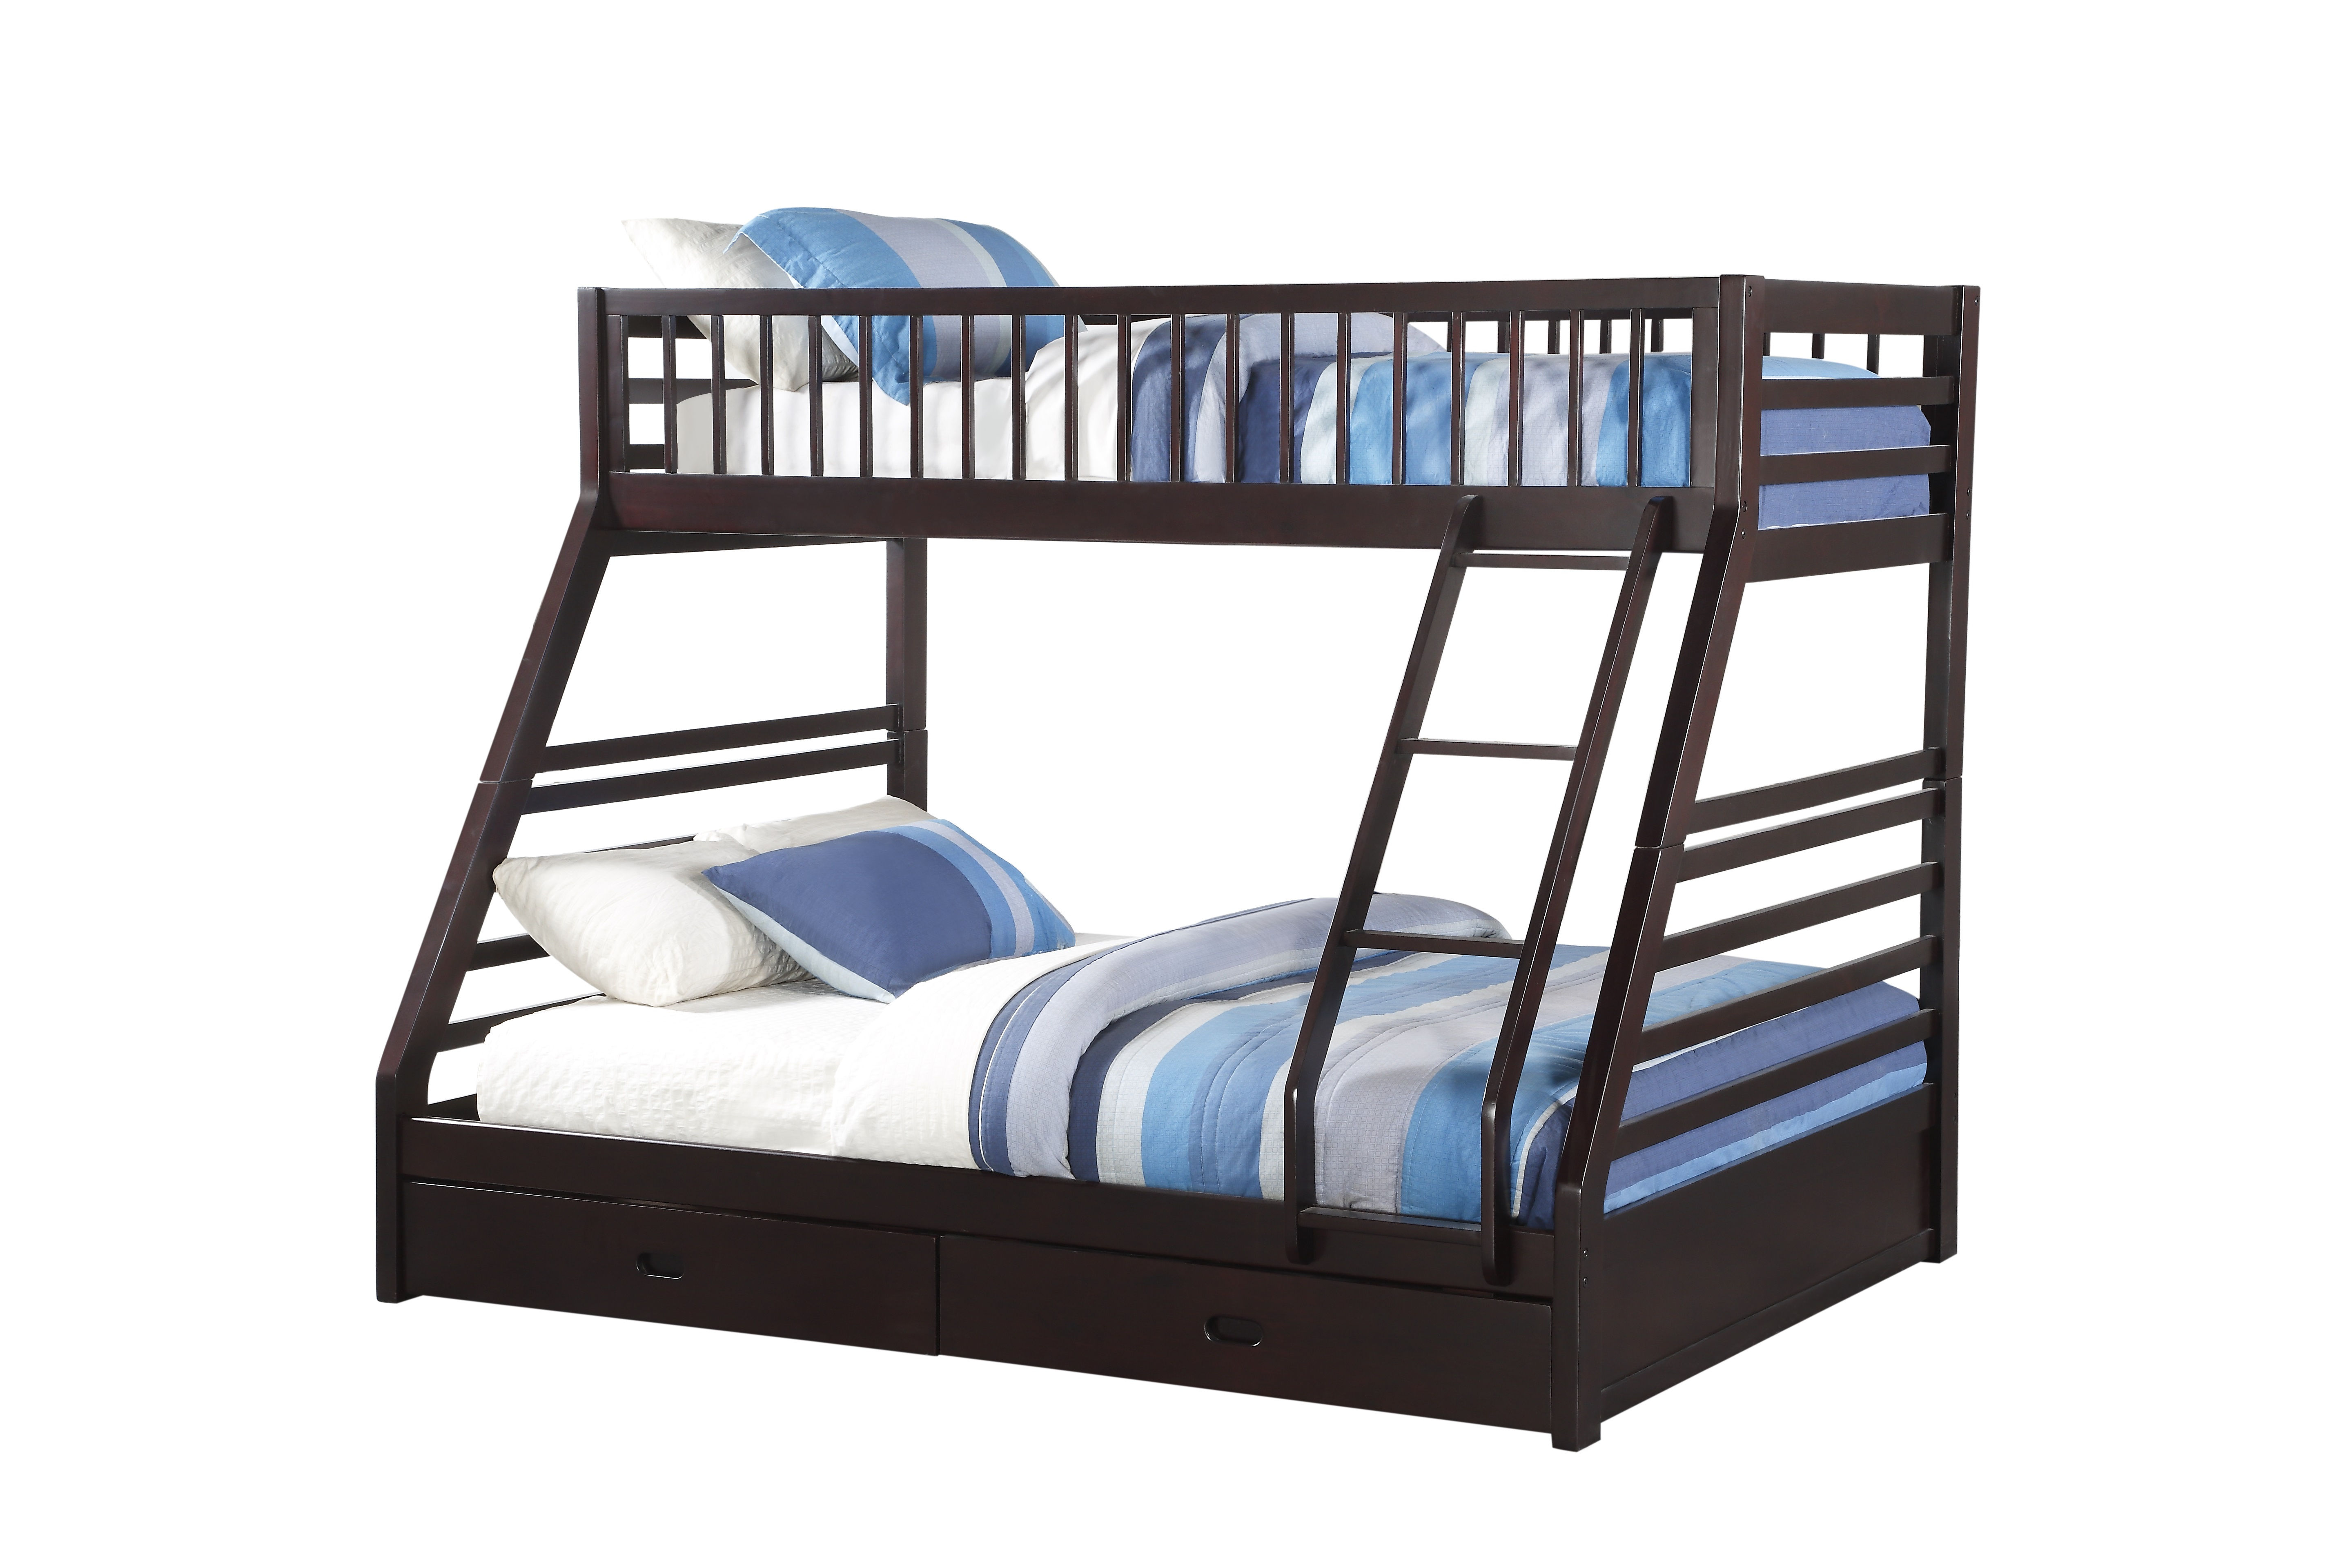 Acme Furniture Jason Espresso Twin Xl Over Queen Bunk Bed With Two Drawers